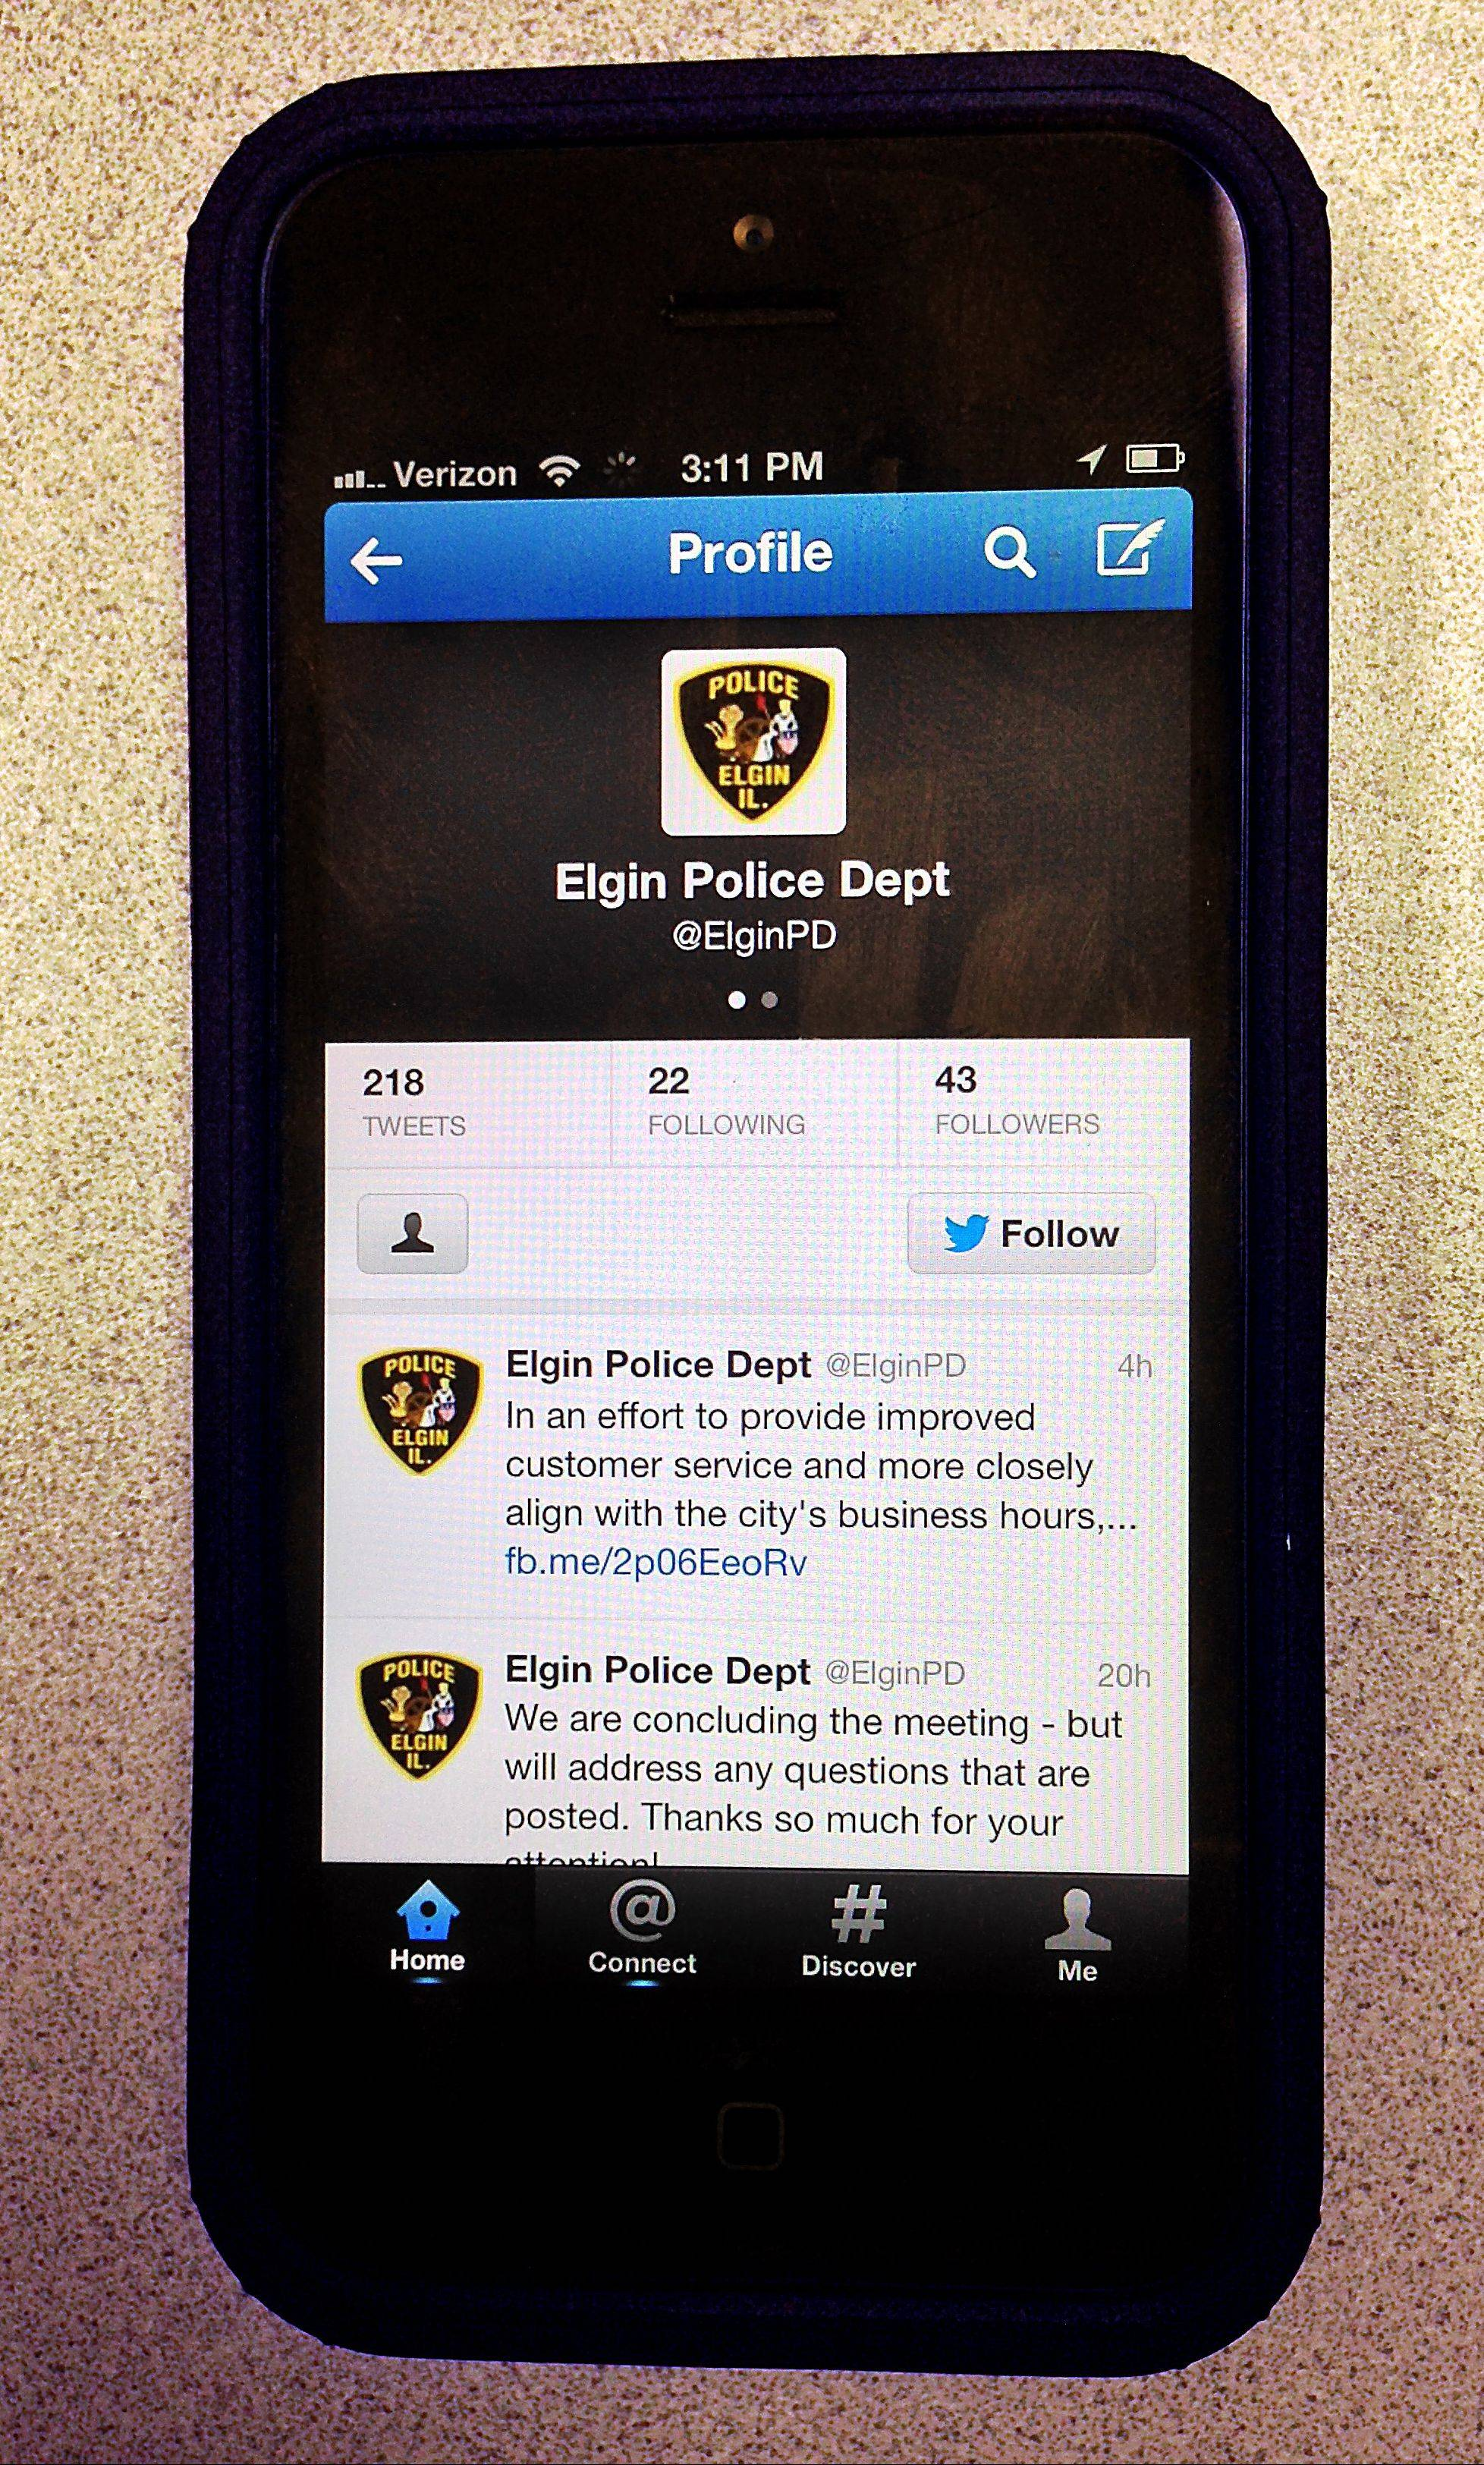 The Elgin Police Department is reaching out to residents through social media, including Twitter. Here, the department's Twitter feed is pictured on an iPhone.